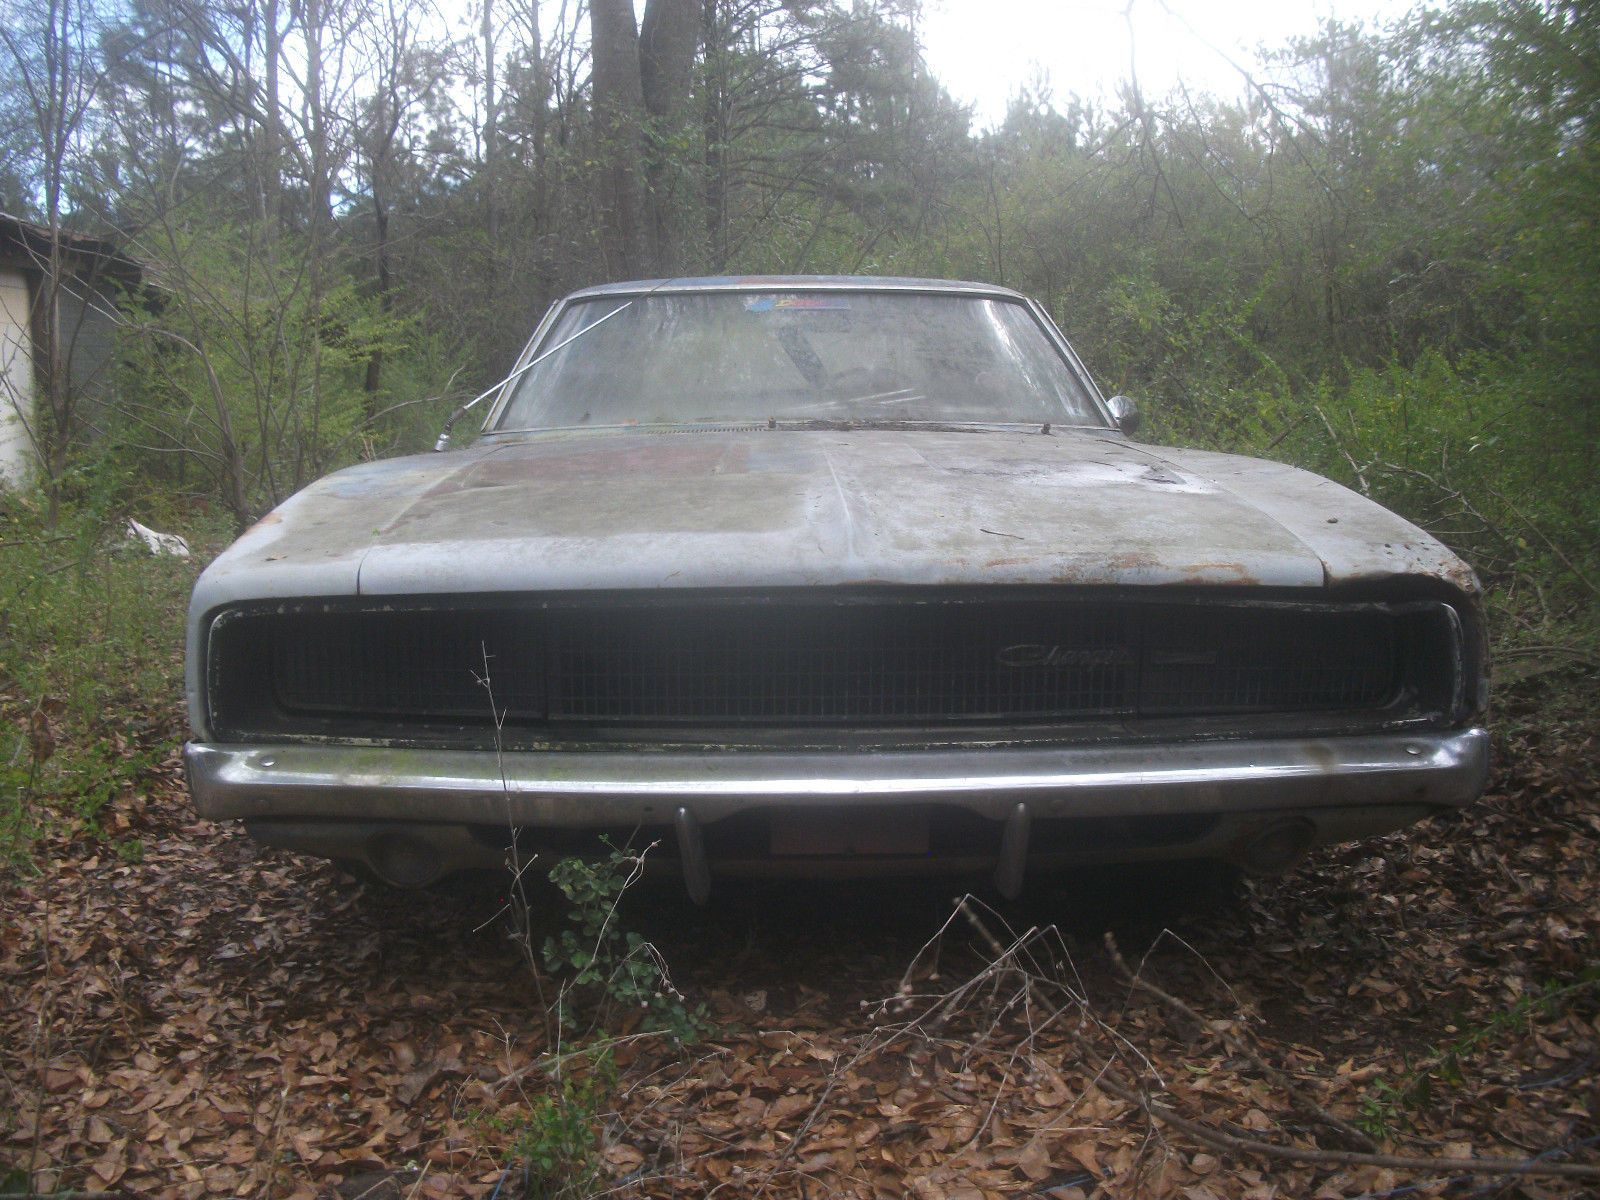 1968 Dodge Charger 5.2L Project Car For Sale | Dodge Charger ...